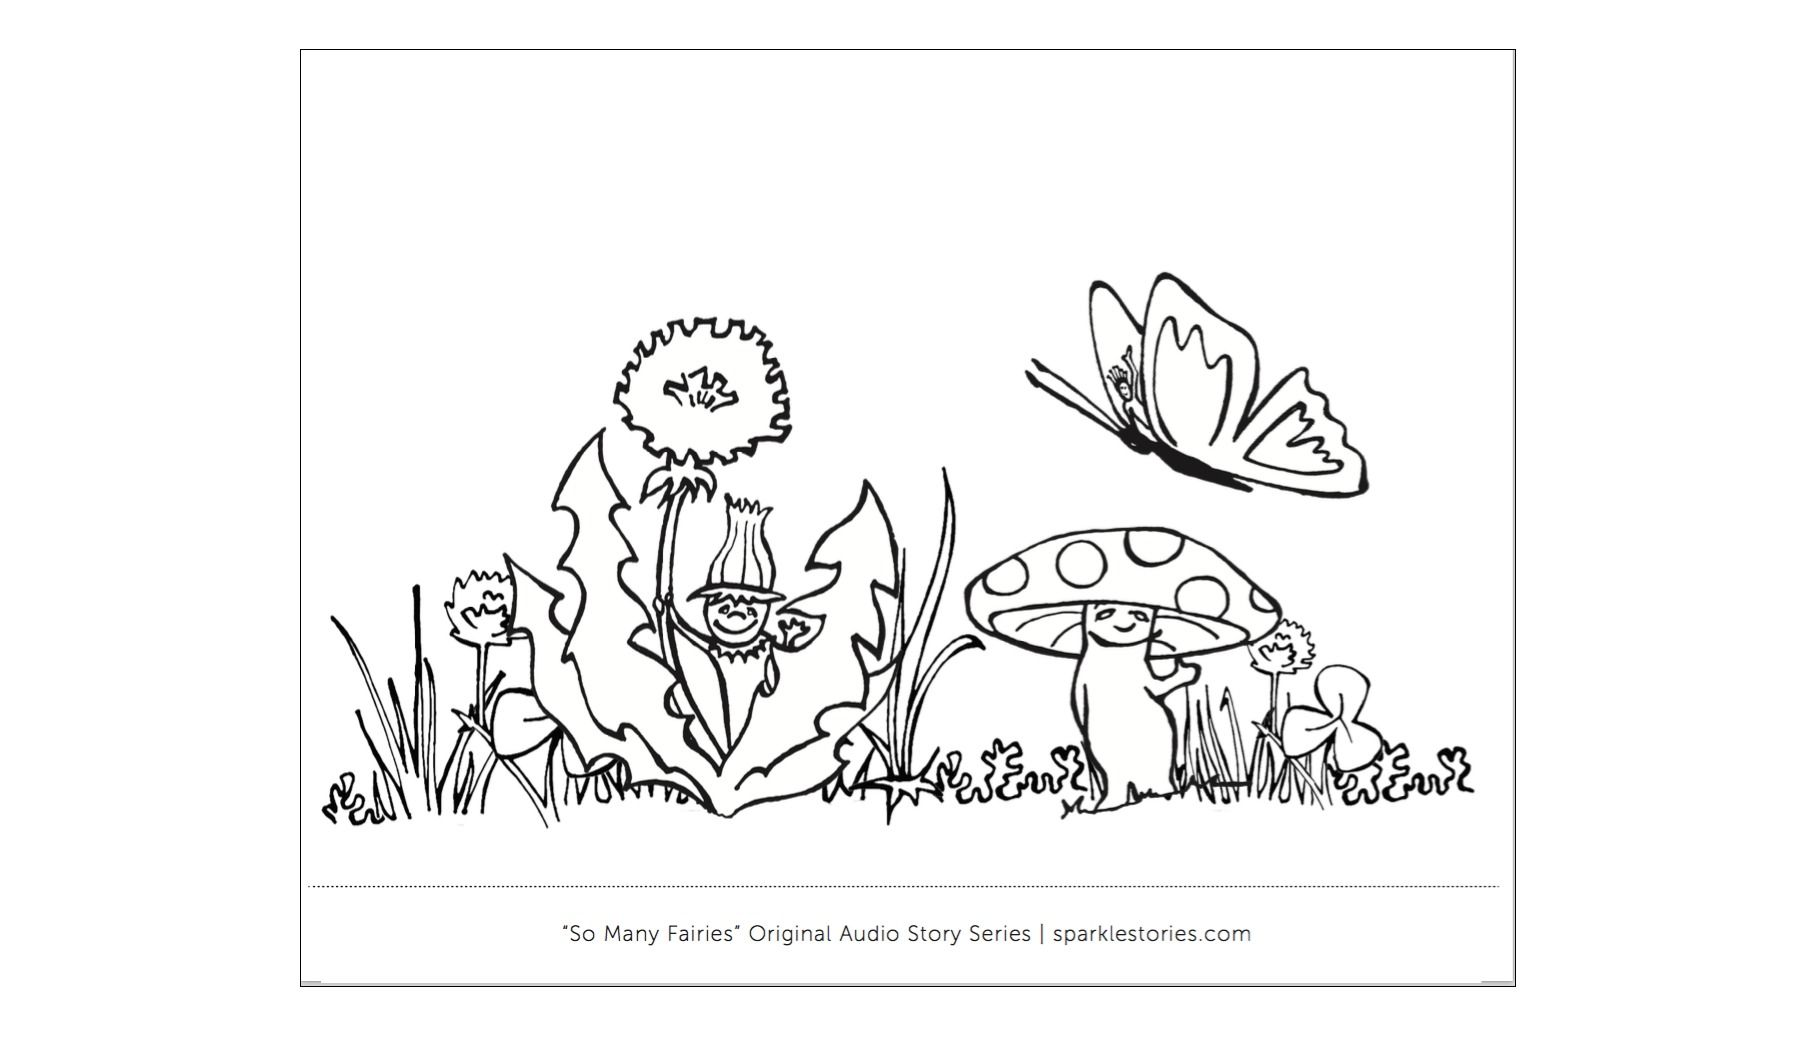 Five Free Printable Sparkle Coloring Pages Flag Coloring Pages Coloring Pages Pirate Flag